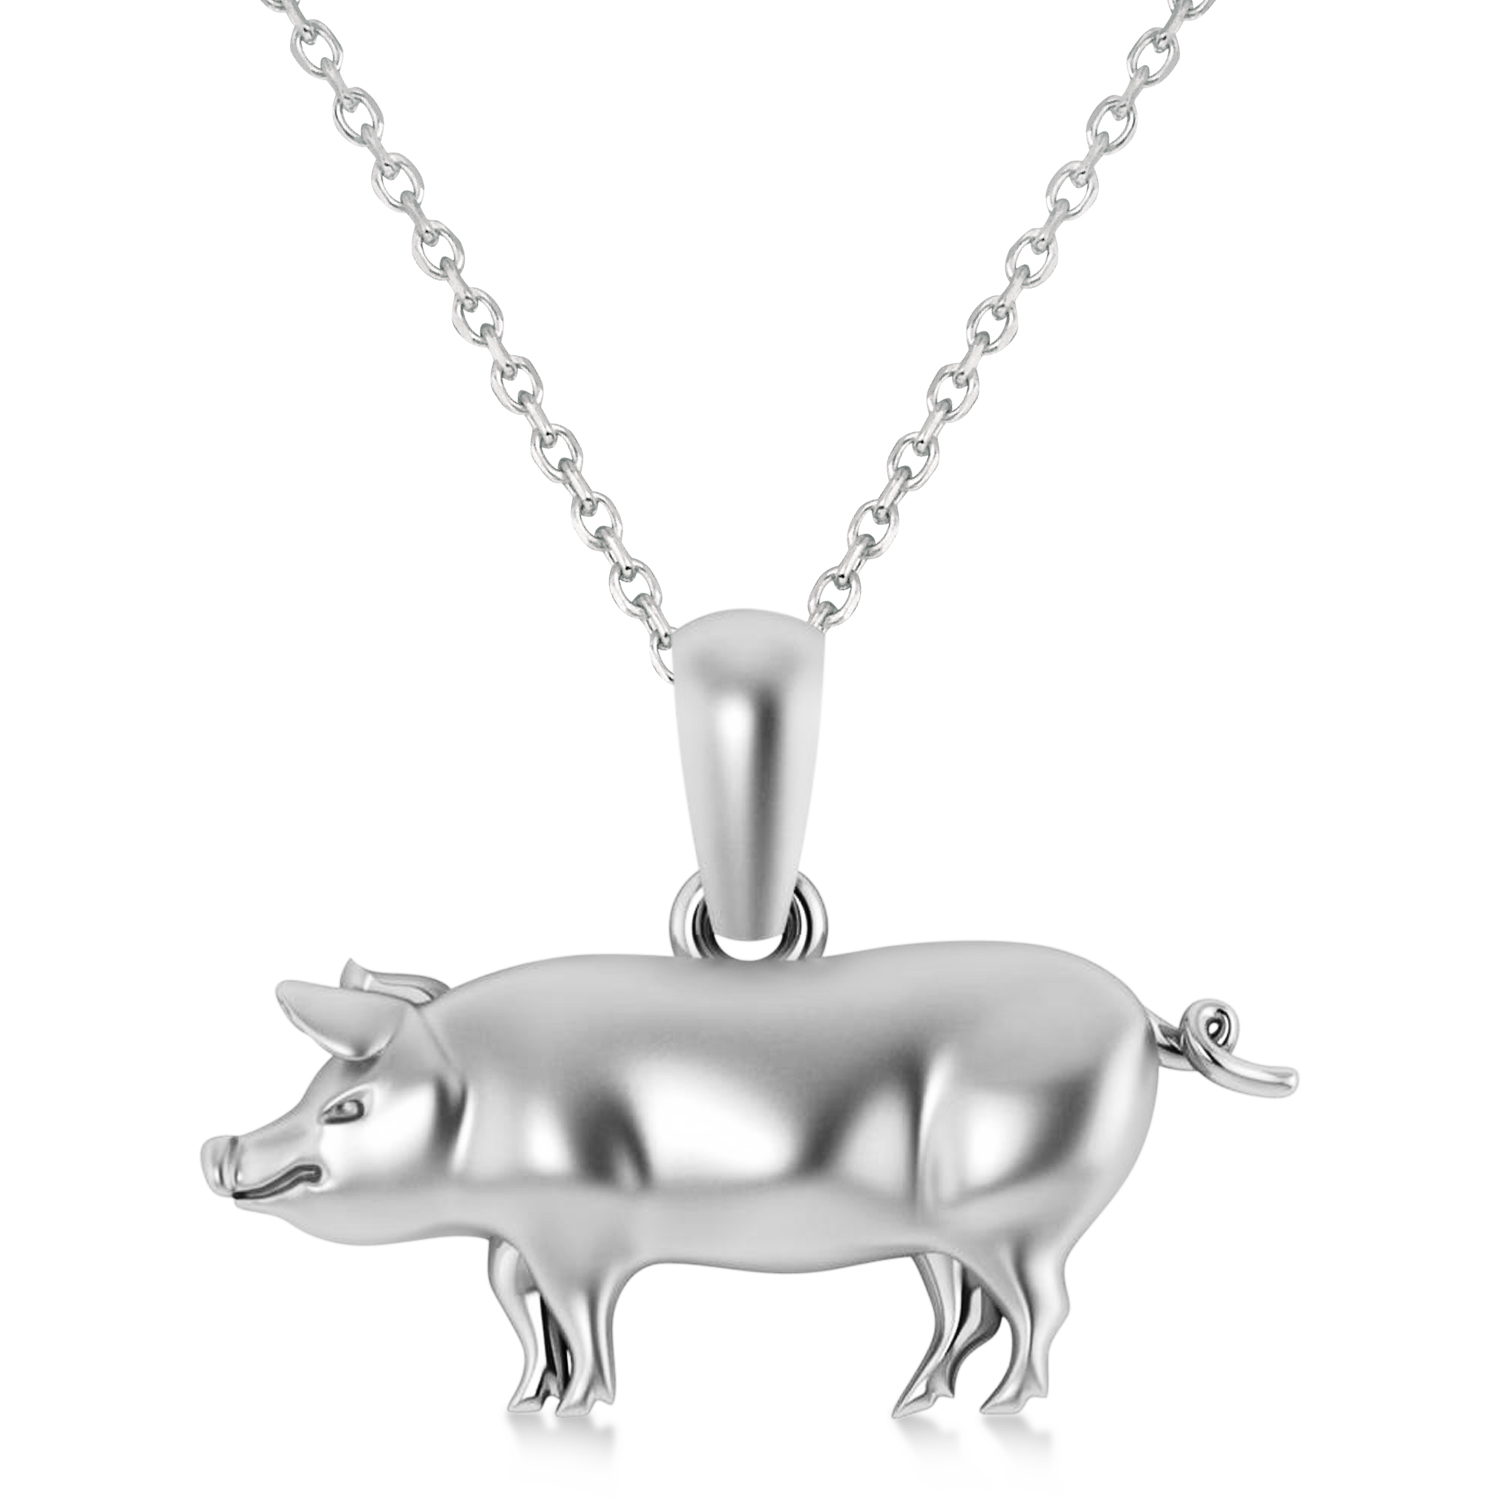 Jewelry Sets Chinese Zodiac Pig Boar Pendant Necklace And Bracelet Set With Pig And Symbol